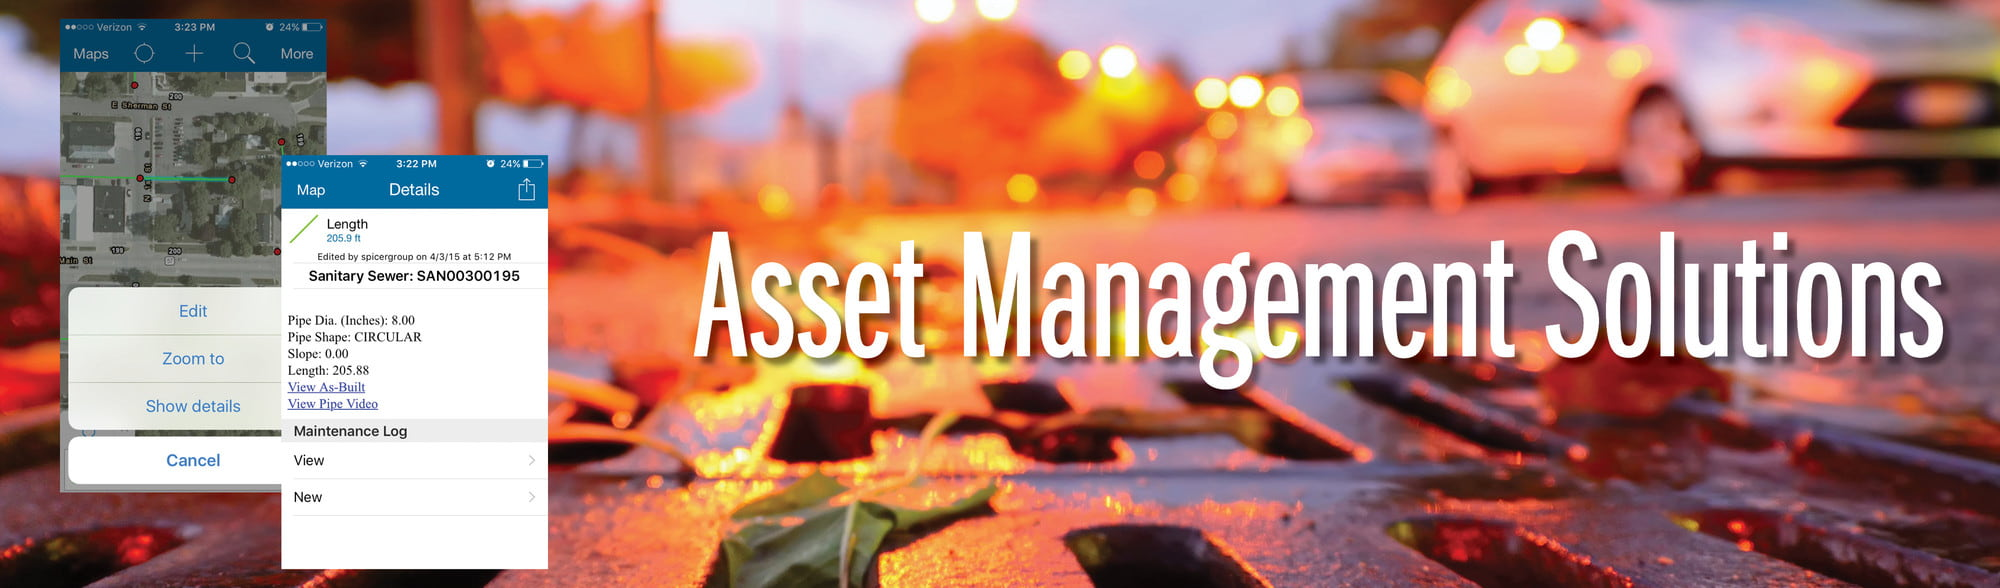 Total Asset Management Solutions